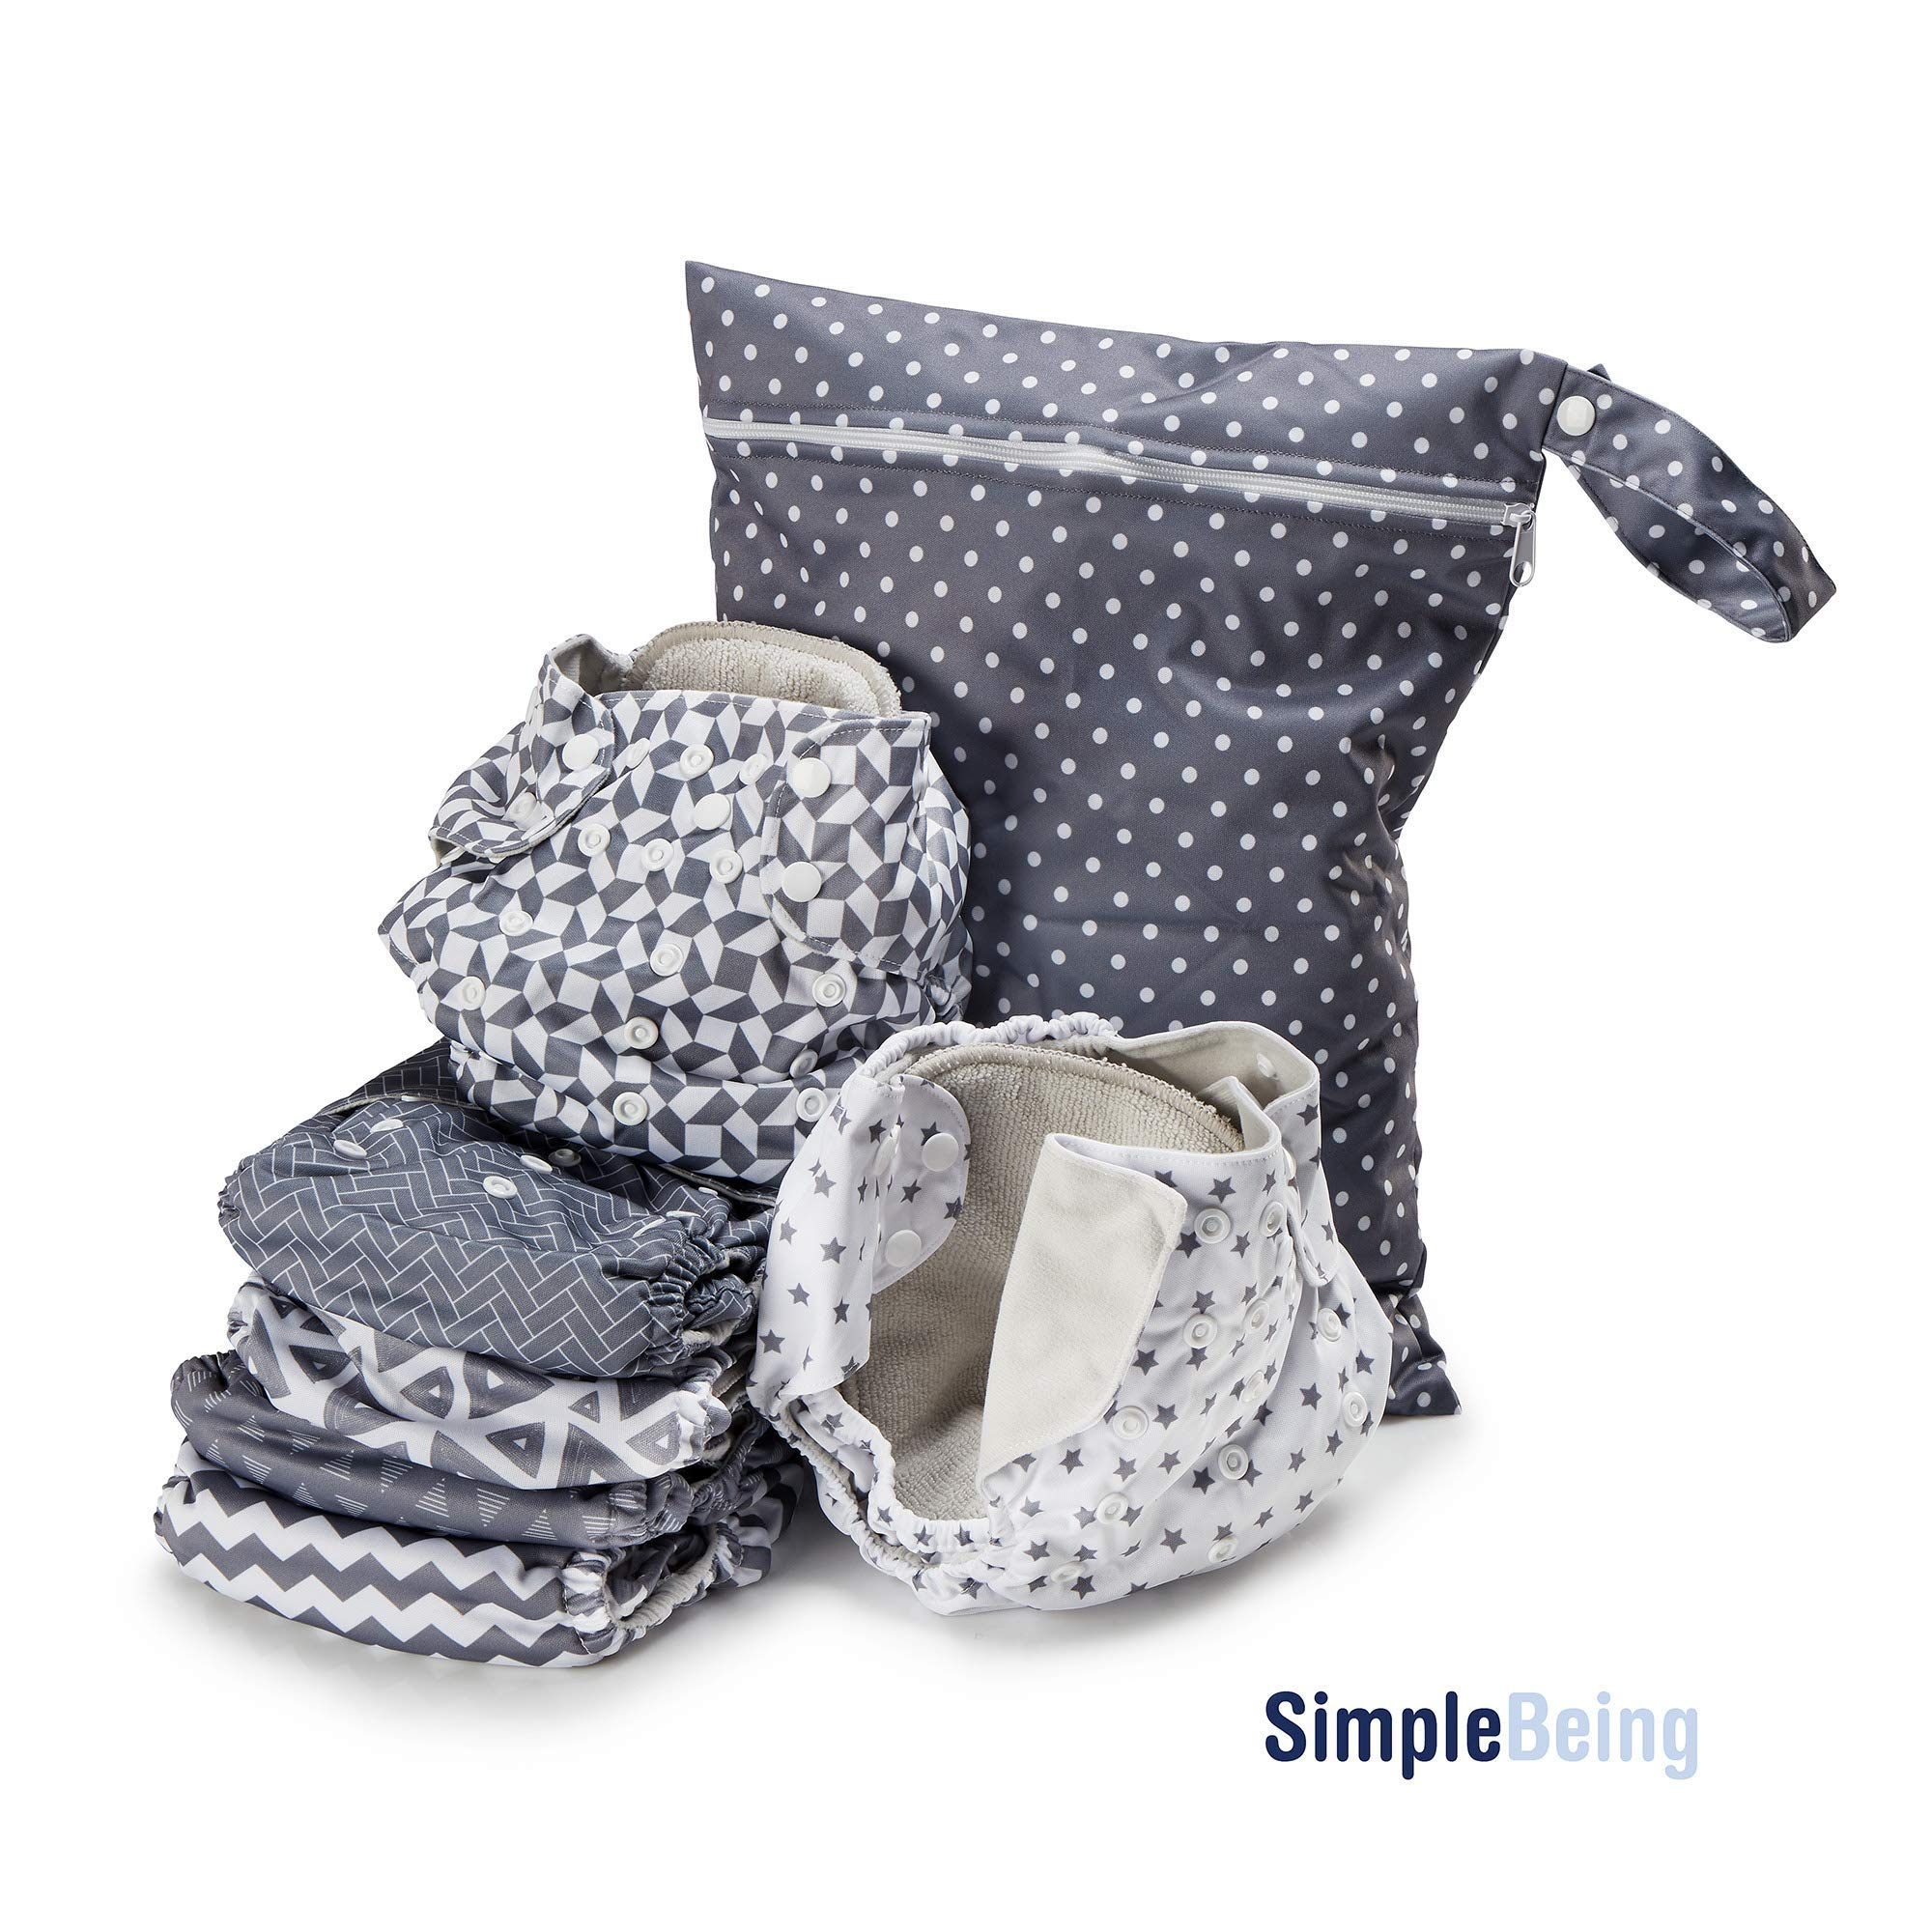 Simple Being Reusable Cloth Diapers, Double Gusset, One Size Adjustable, Washable Soft Absorbent, Waterproof Cover, Eco-Friendly Unisex Baby Girl Boy, with six 4-layers microfiber inserts (Geometrics) by Simple Being